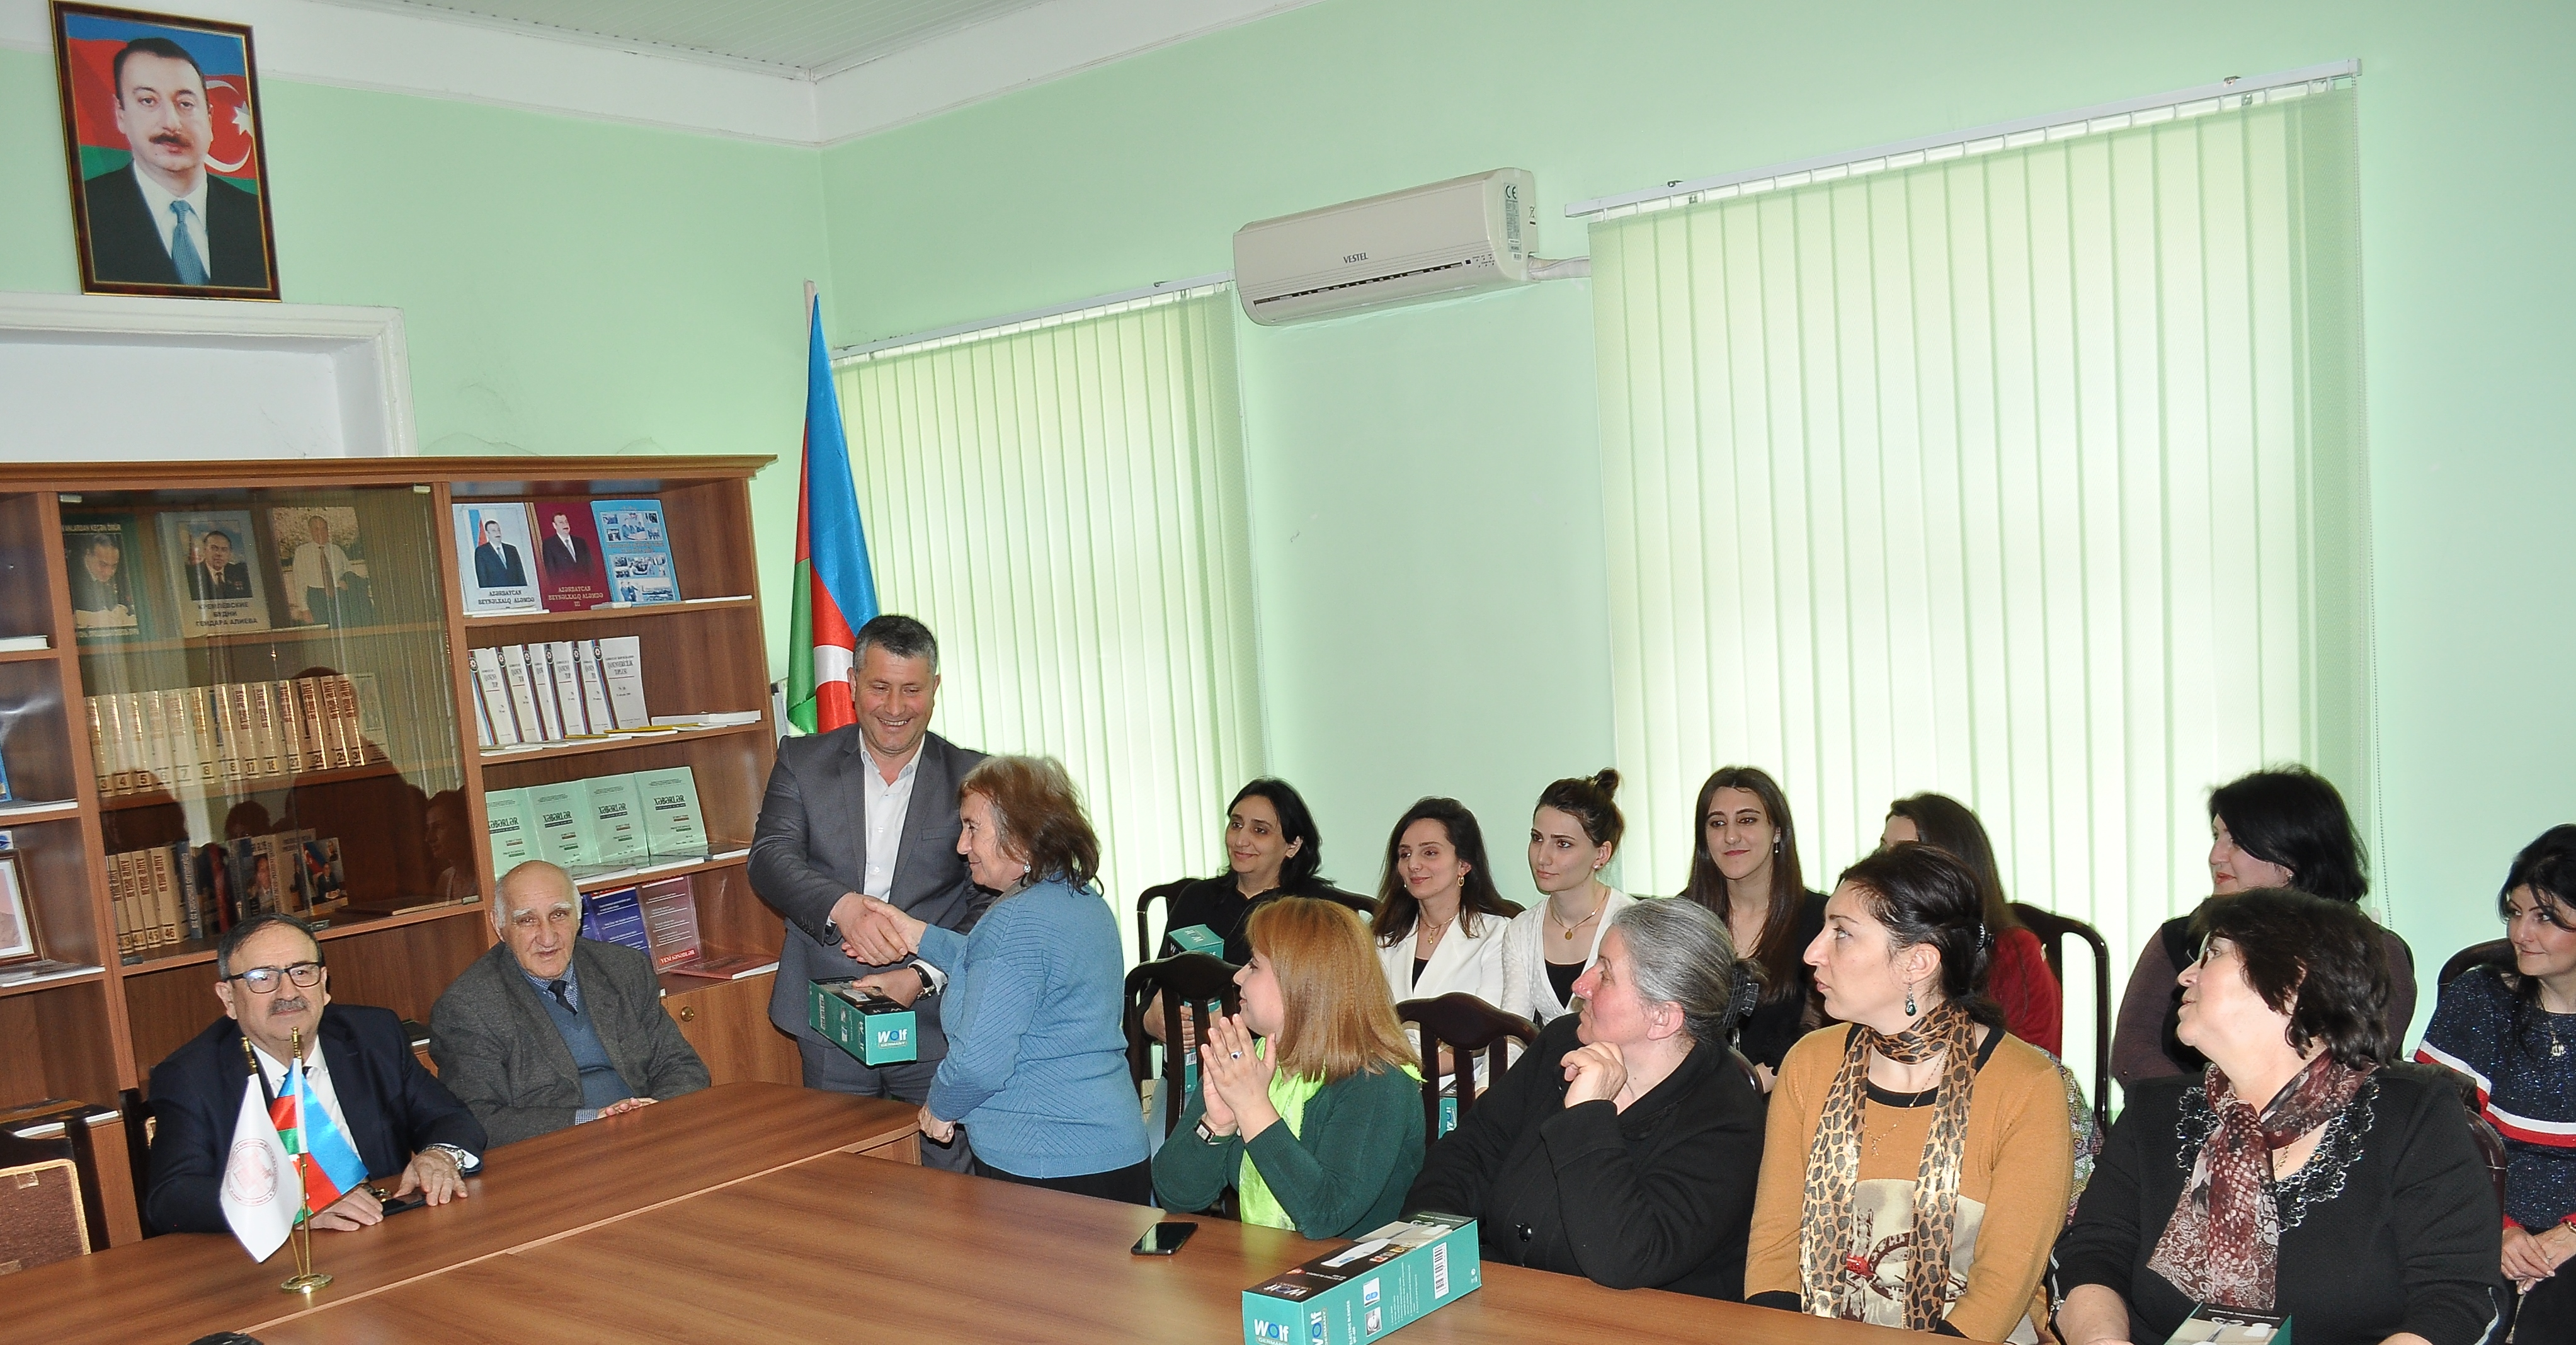 On March 06, 2020 the ceremony dedicated to International Women's Day was held by Trade Union of Sheki Regional Scientific Center